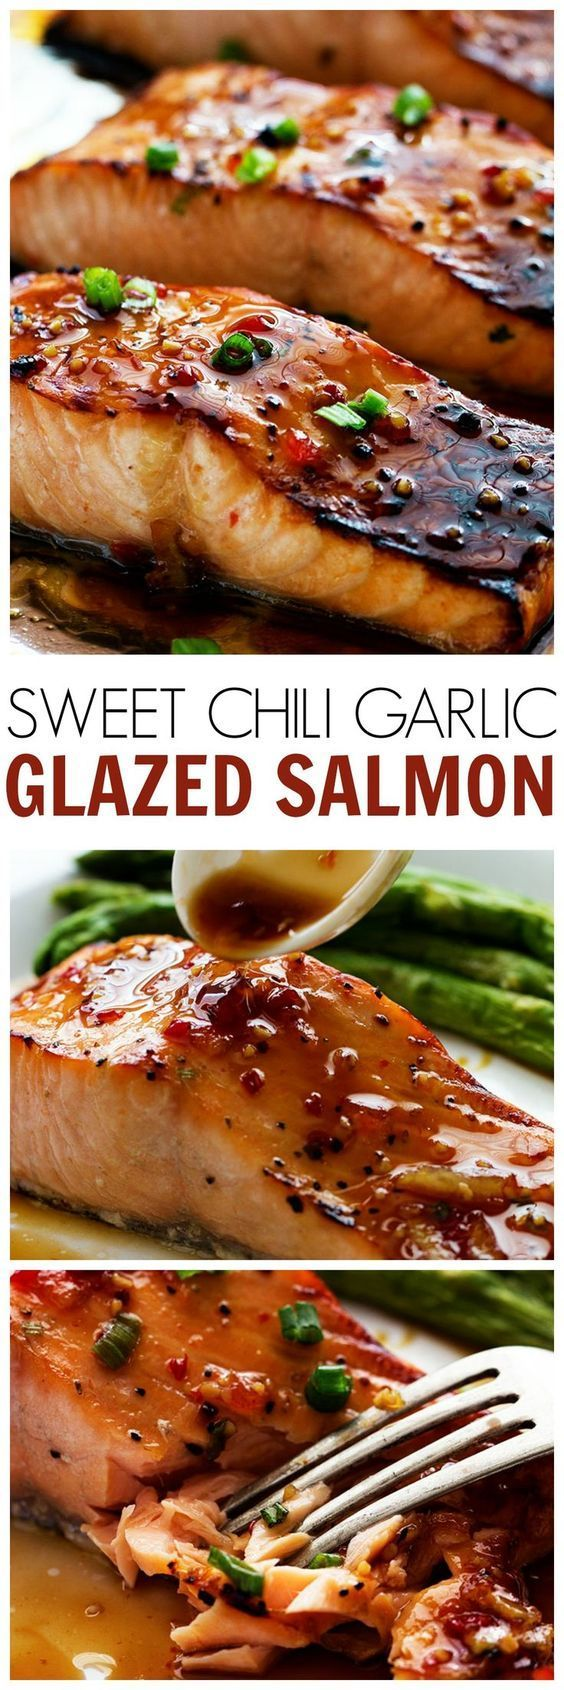 This Sweet Chili Garlic Glazed Salmon will be the BEST salmon that you ever make! The Glaze on top caramelizes to this perfect salmon and the flavor is AMAZING!! #seafoodrecipes